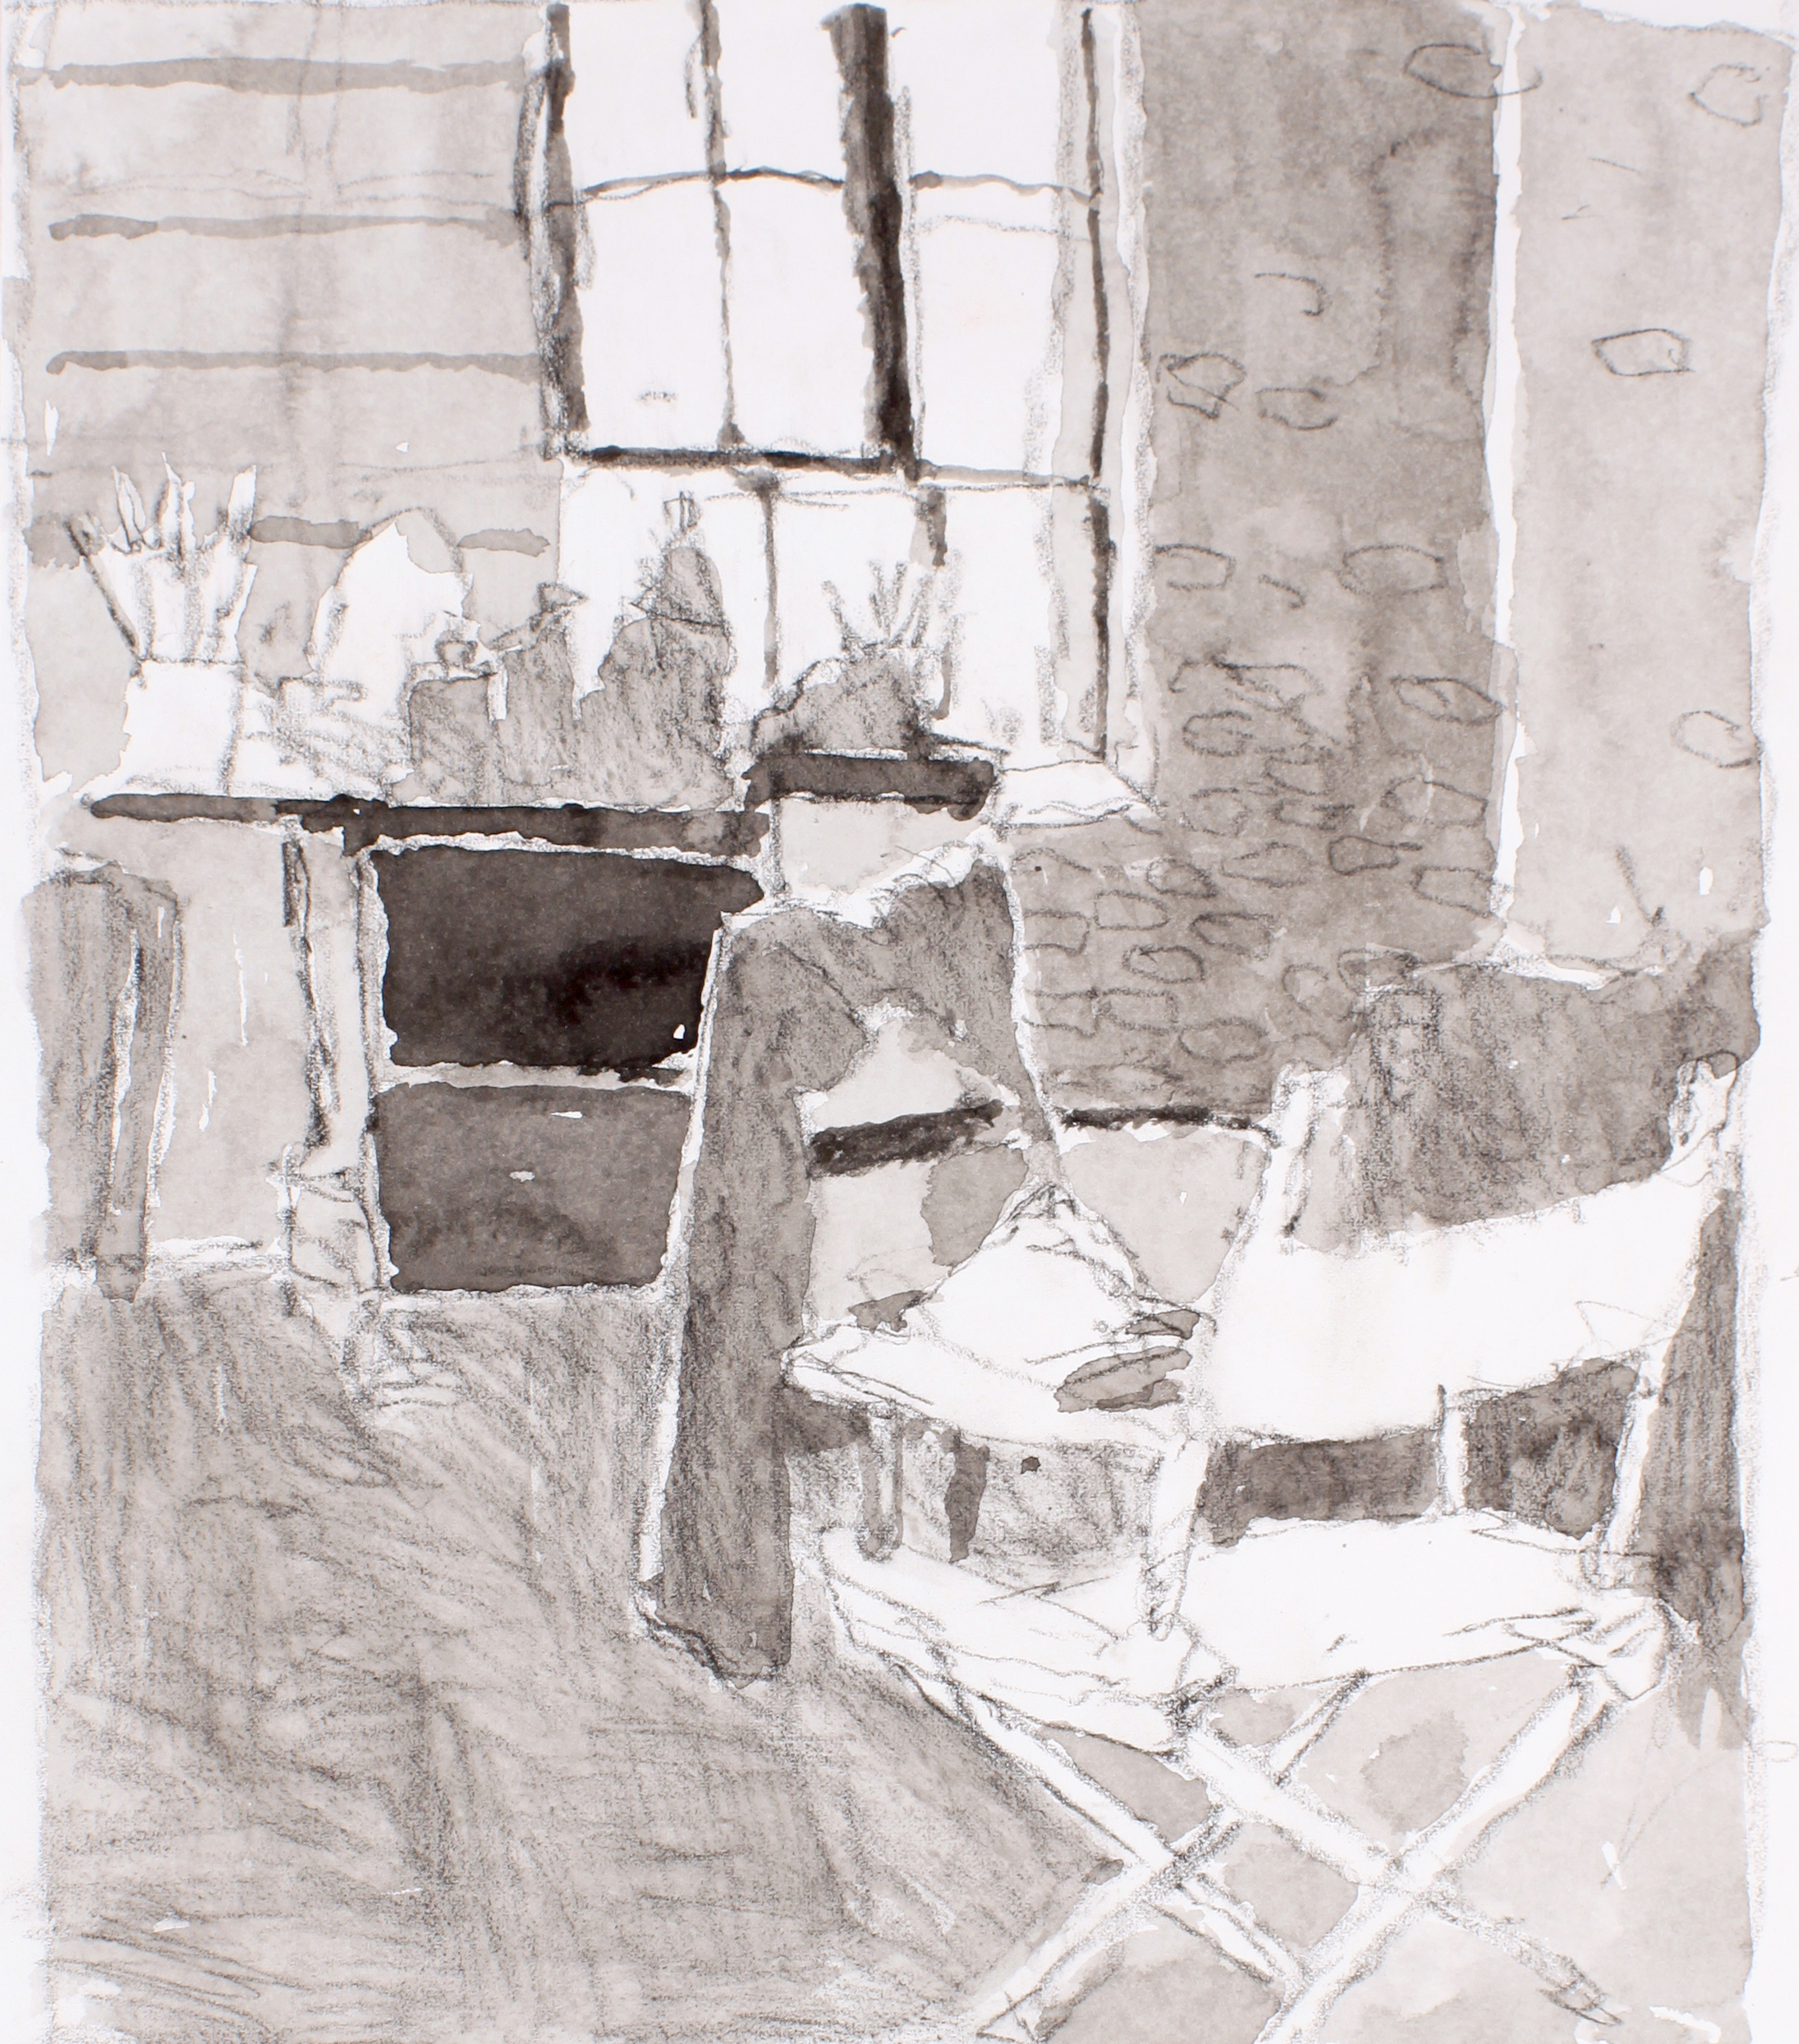 1990s_Studio_Interior_with_Directors_Chair_and_Jacket_on_Small_Chair_watercolour_and_conte_on_paper_10x9in_WPF651.jpg